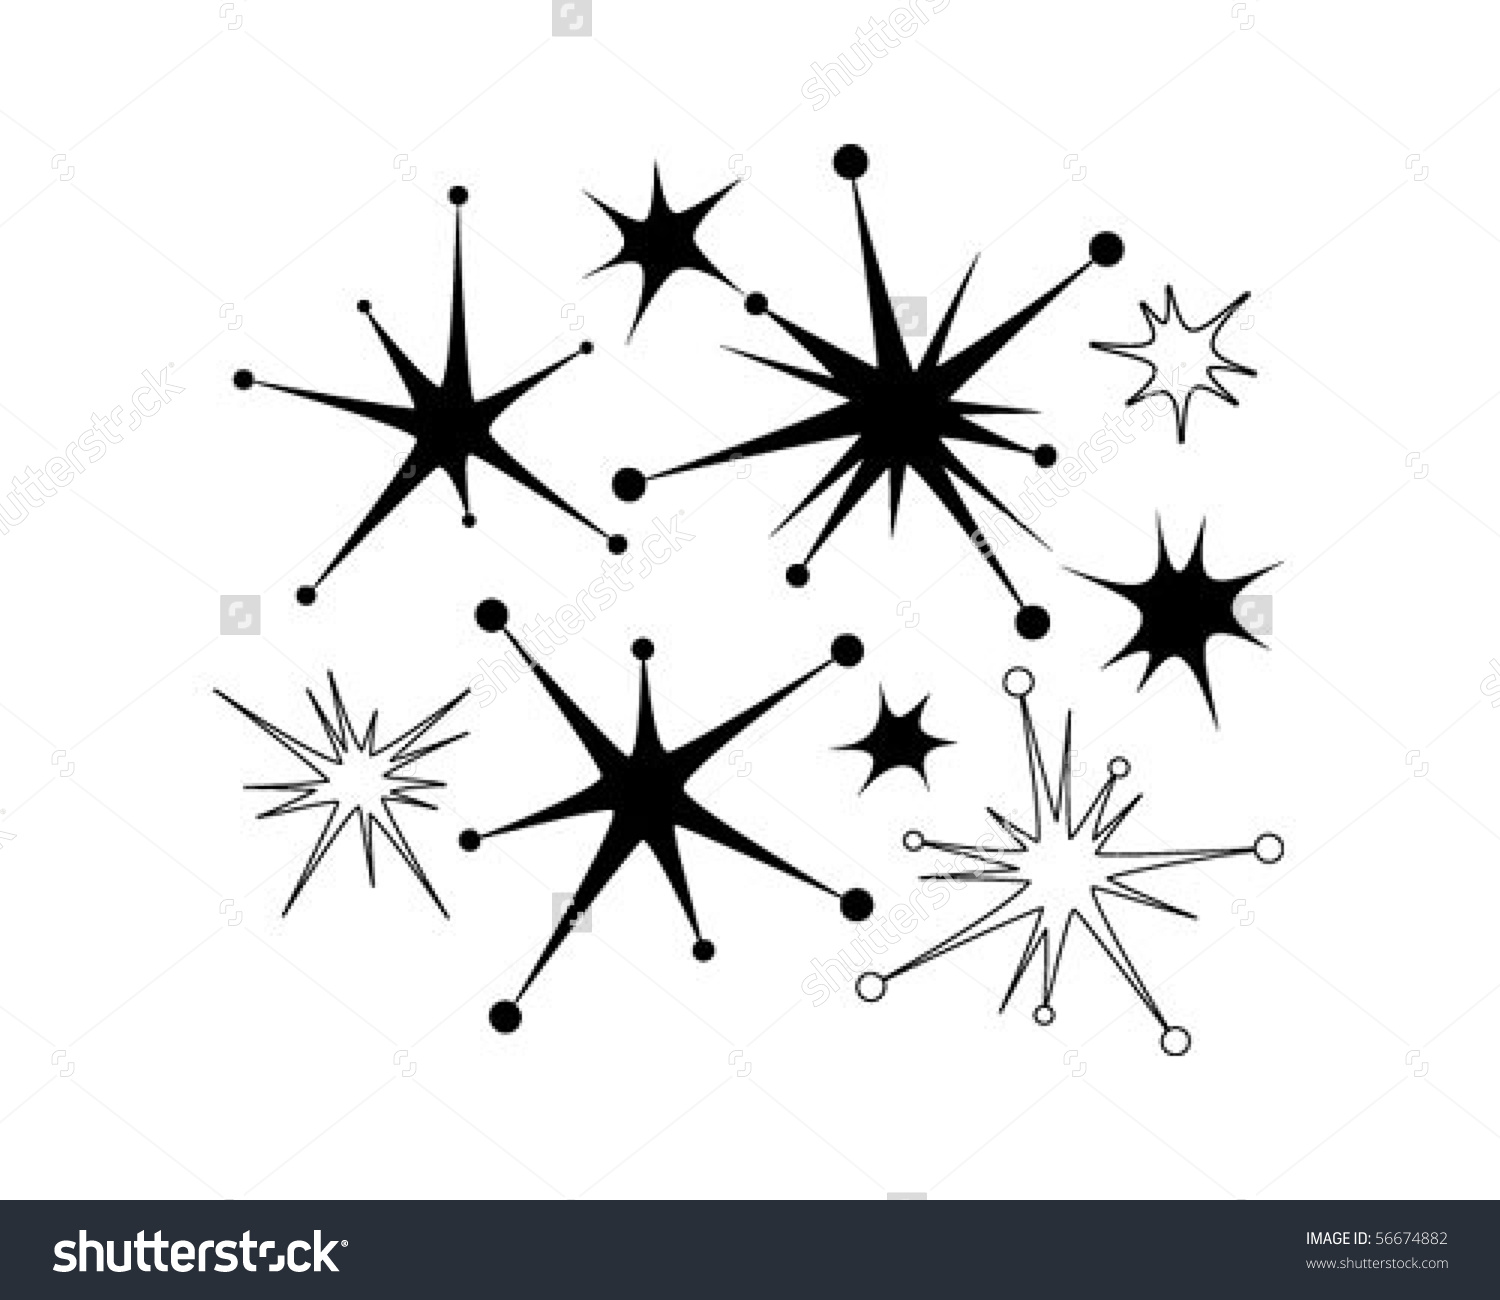 Retro Stars 9 Clip Art Stock Vector 56674882.